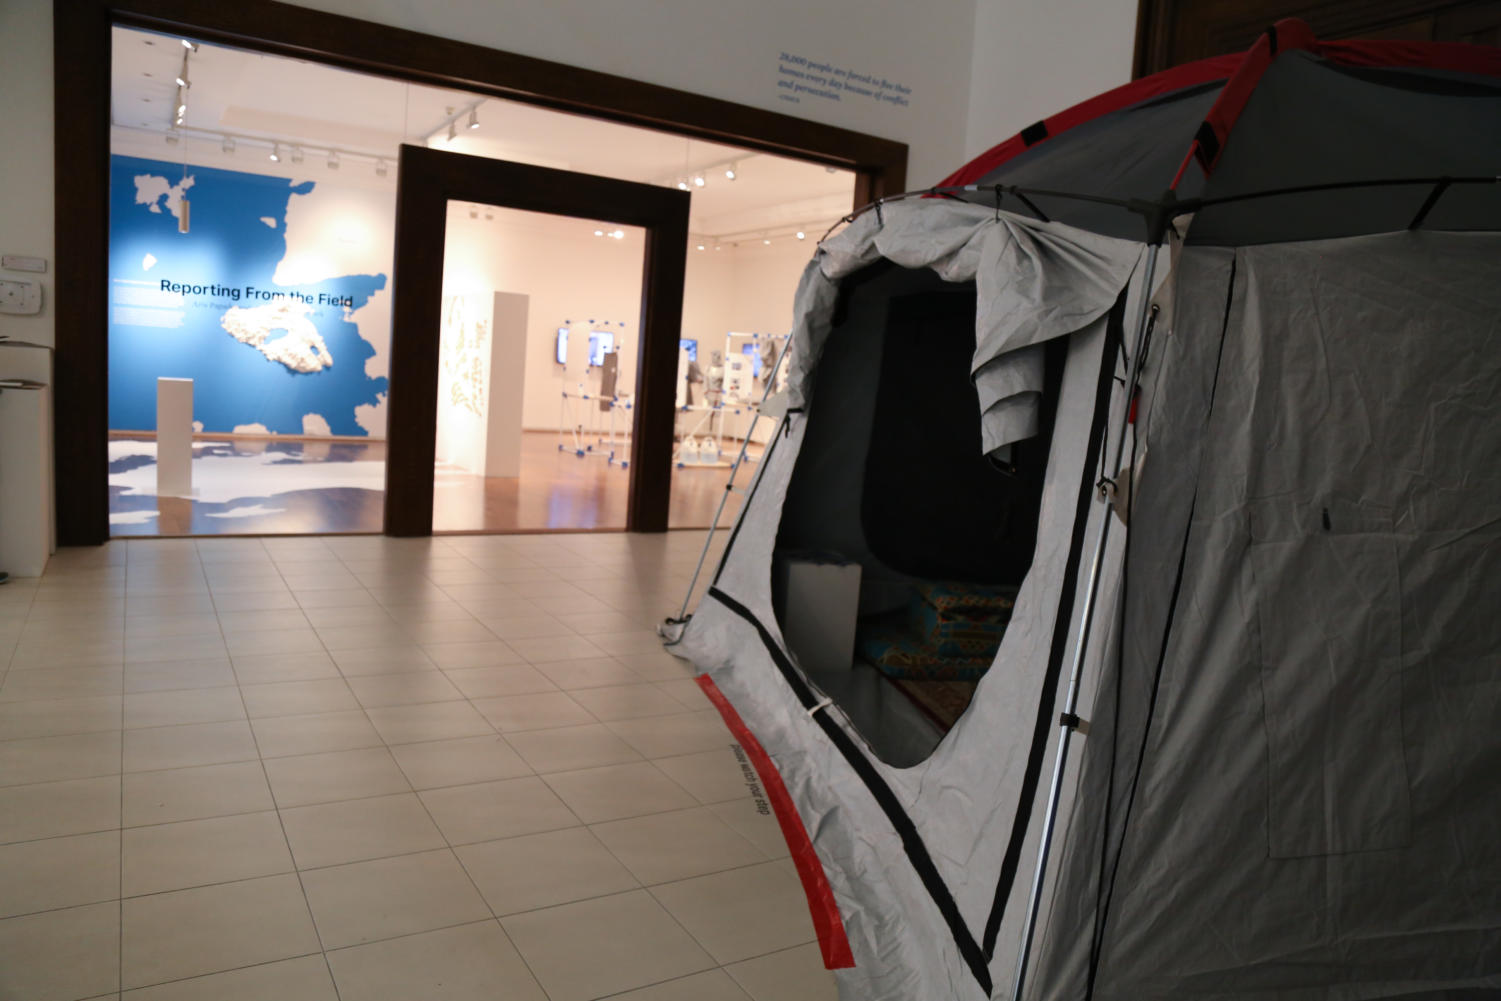 1.%09A+tent%2C+similar+to+the+housing+tents+at+the+Kara+Tepe+camp%2C+is+set+up+outside+the+exhibition+to+demonstrate+Syrian+refugees%E2%80%99+living+situations.+%0A